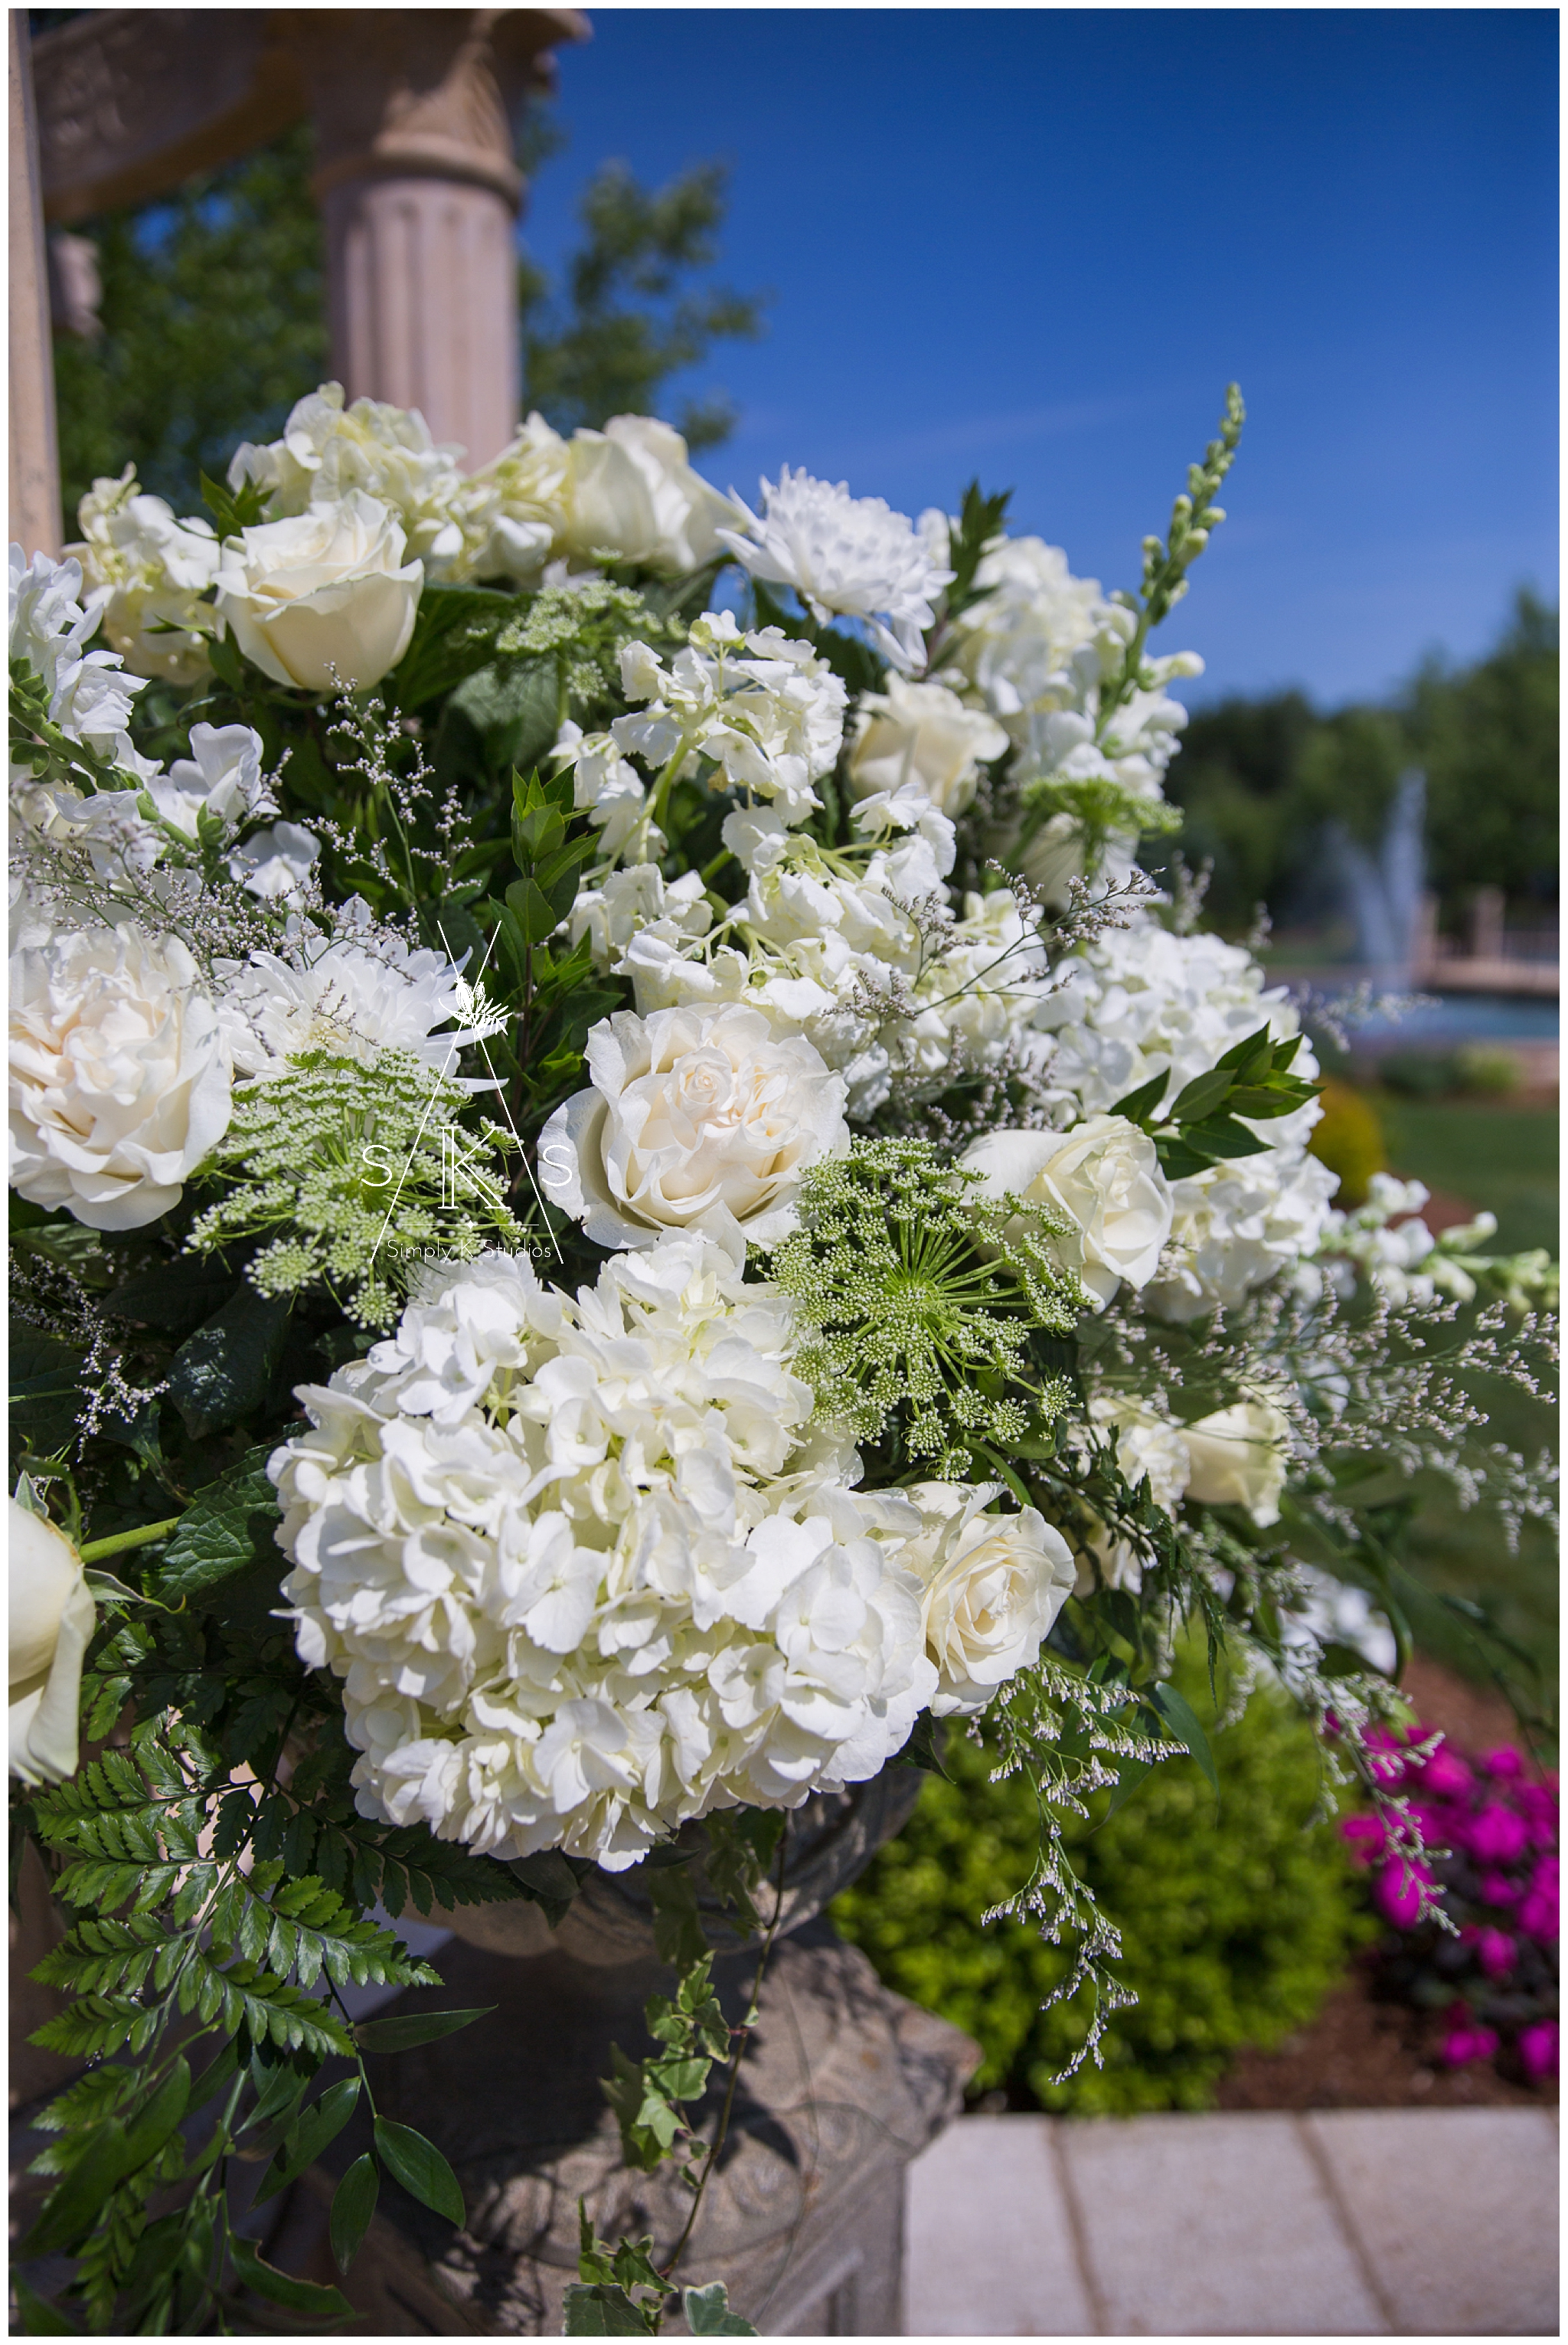 27 Ceremony Flowers for a Wedding.jpg